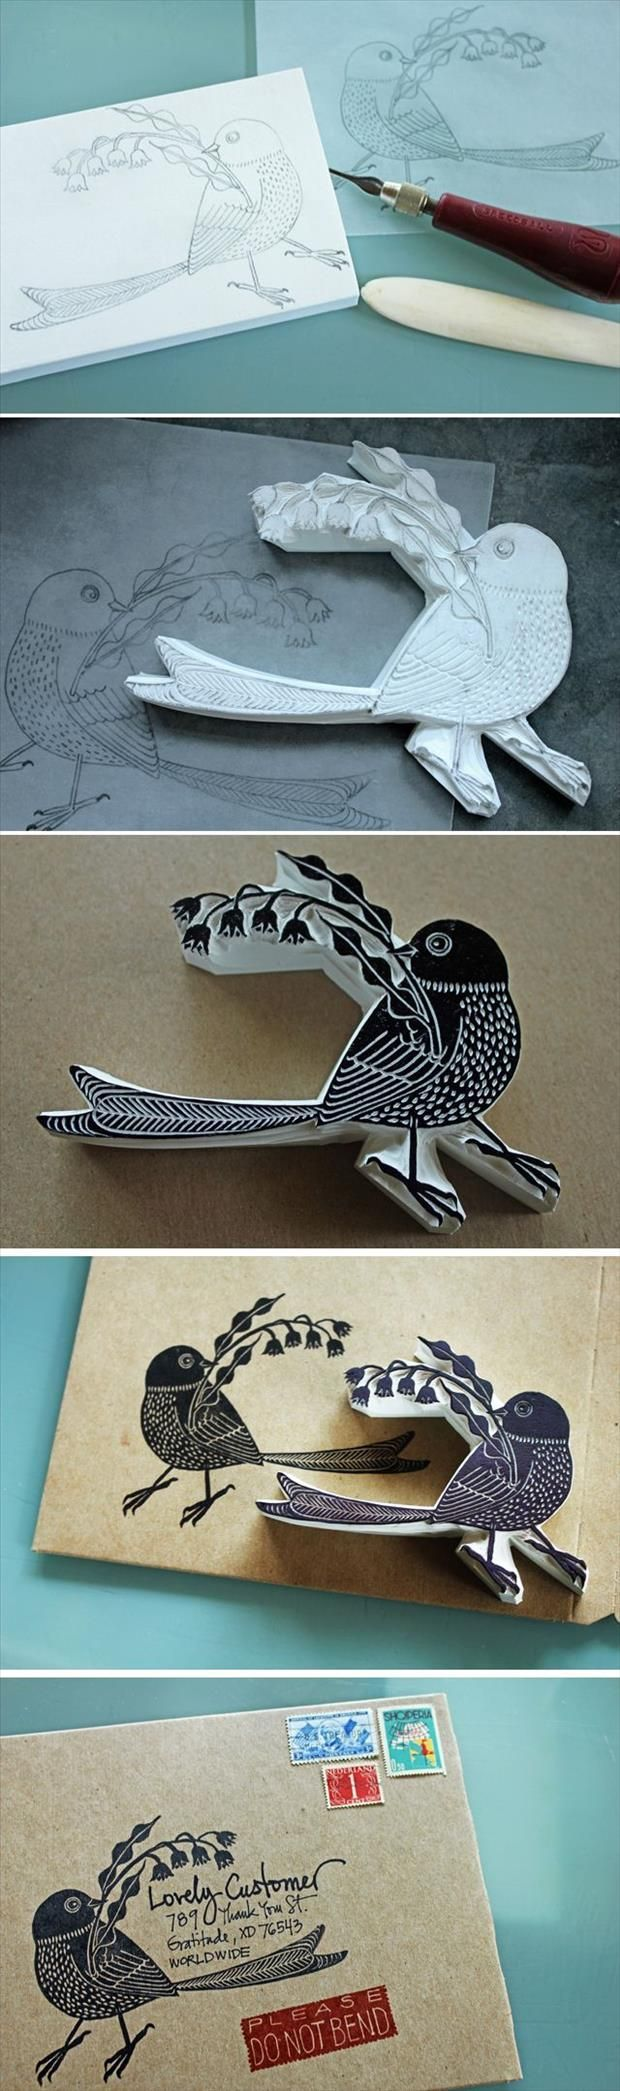 15 Best Lino Images On Pinterest